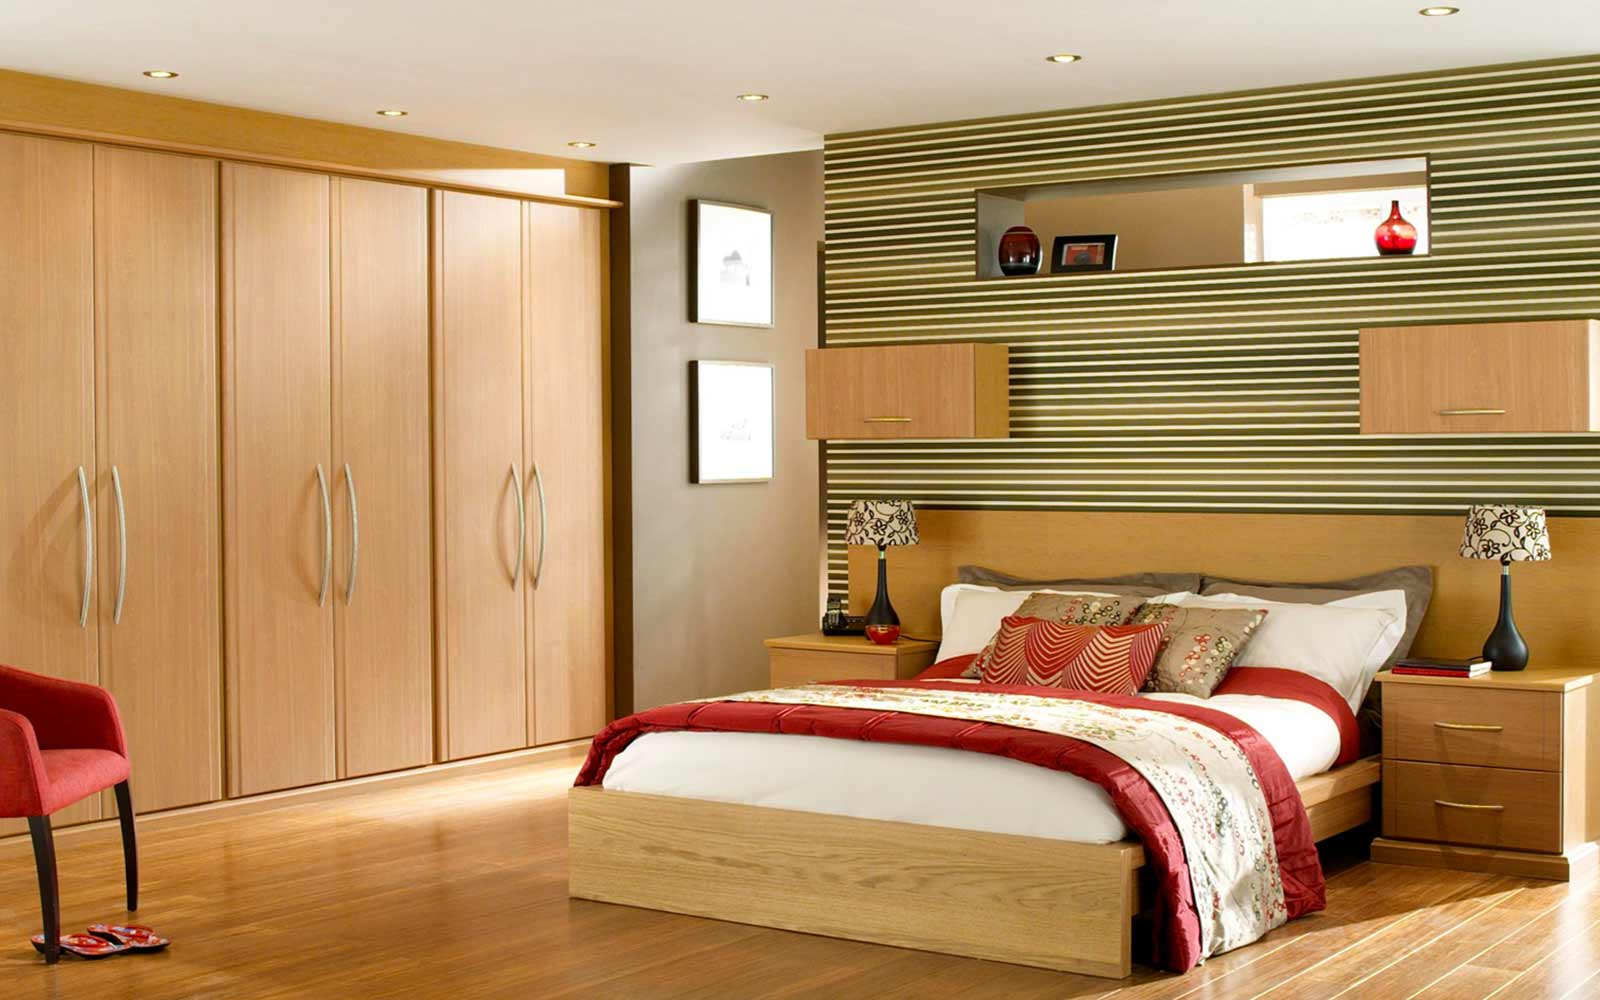 Indian bed furniture design - The Perfection Of The Room Is Par Excellence The Wardrobes At The Side And Dusky Sand Colored Furniture Gives A Very Beautiful Look To The Room The Design